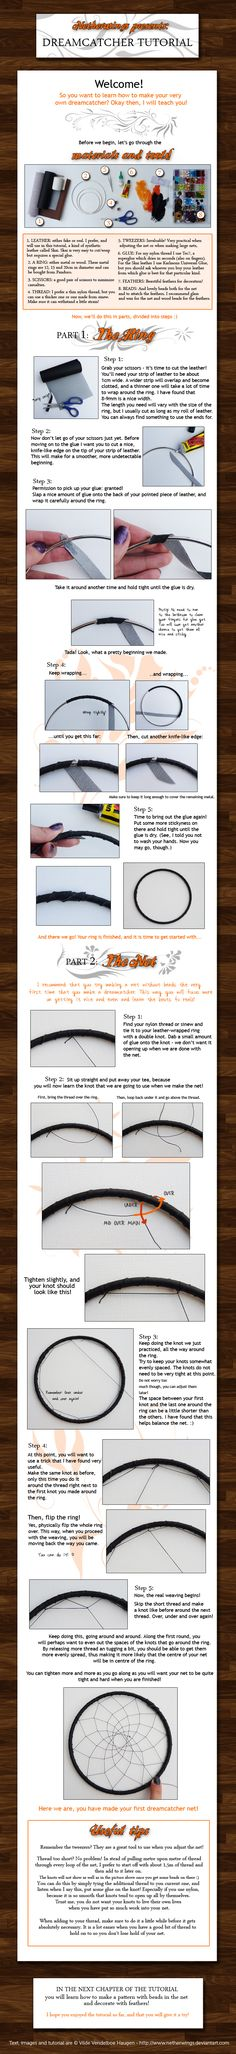 Dreamcatcher tutorial: Ch. 1 by netherwings.deviantart.com on @deviantART